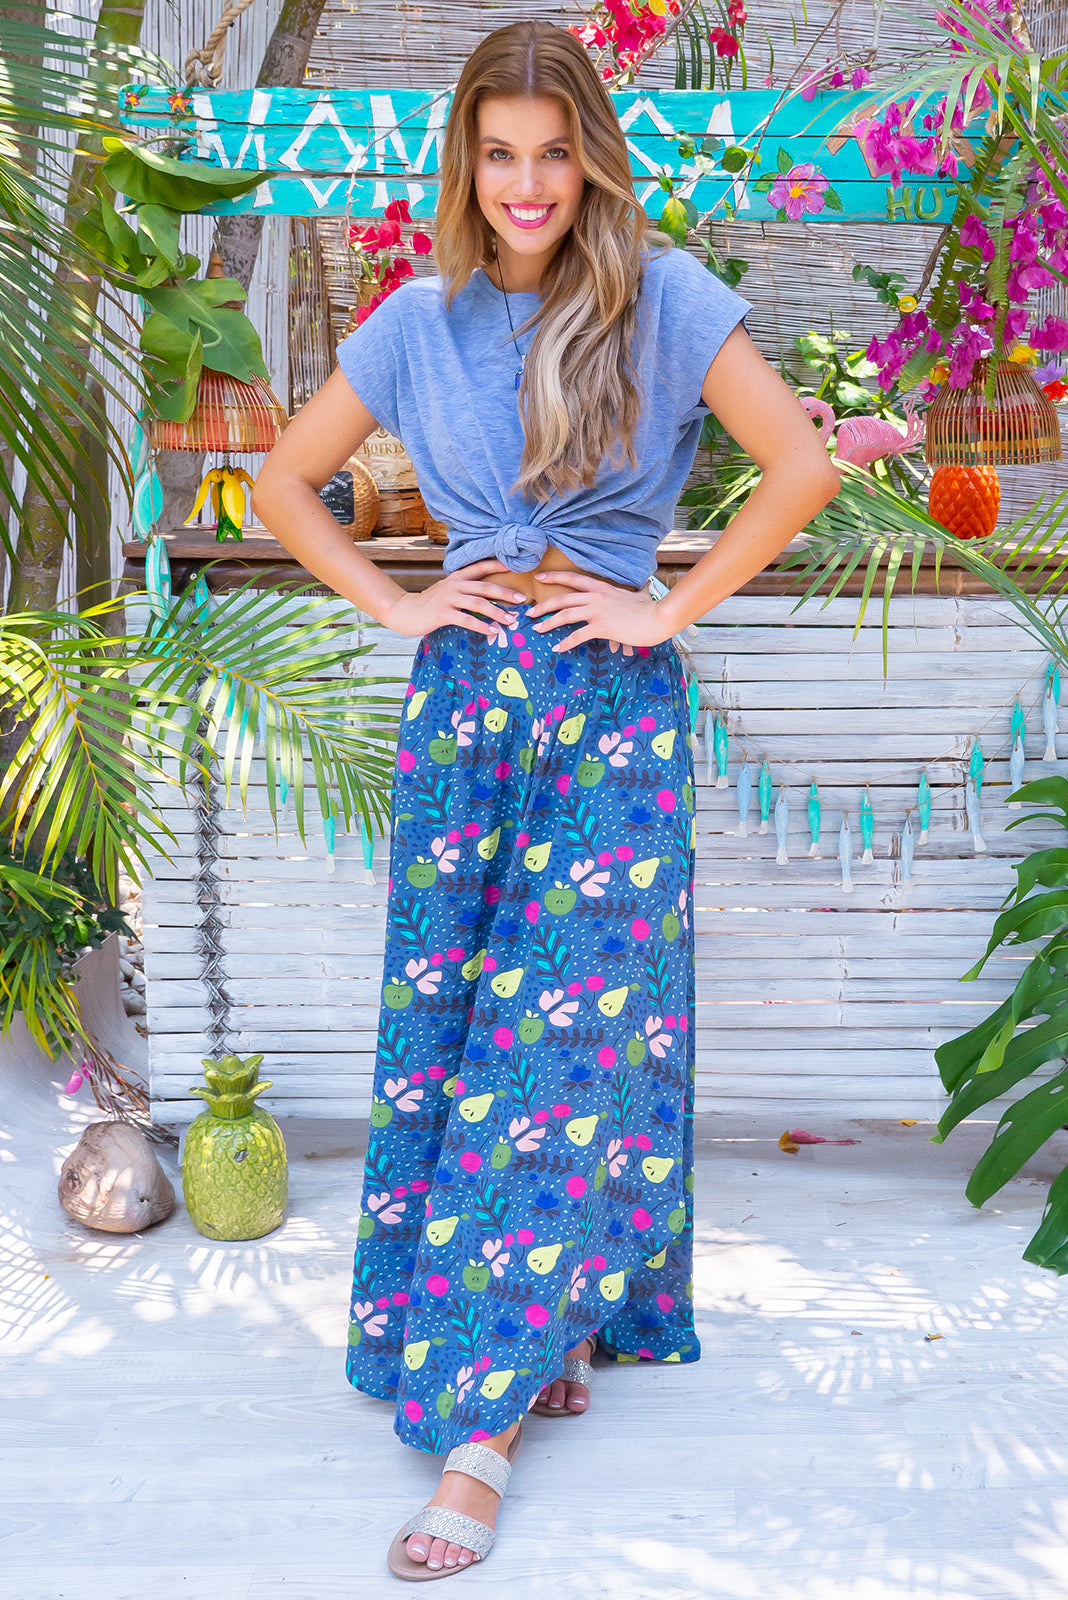 Sails Fruity Navy Maxi Skirt, bohemian summers style, 100% cotton with seersucker texture, scooped hemline shorter at sides, v shaped panelled waist band, elasticated back of waist, side pockets, navy base with medium lime green, fuchsia, blue and pastel pink fruit print.